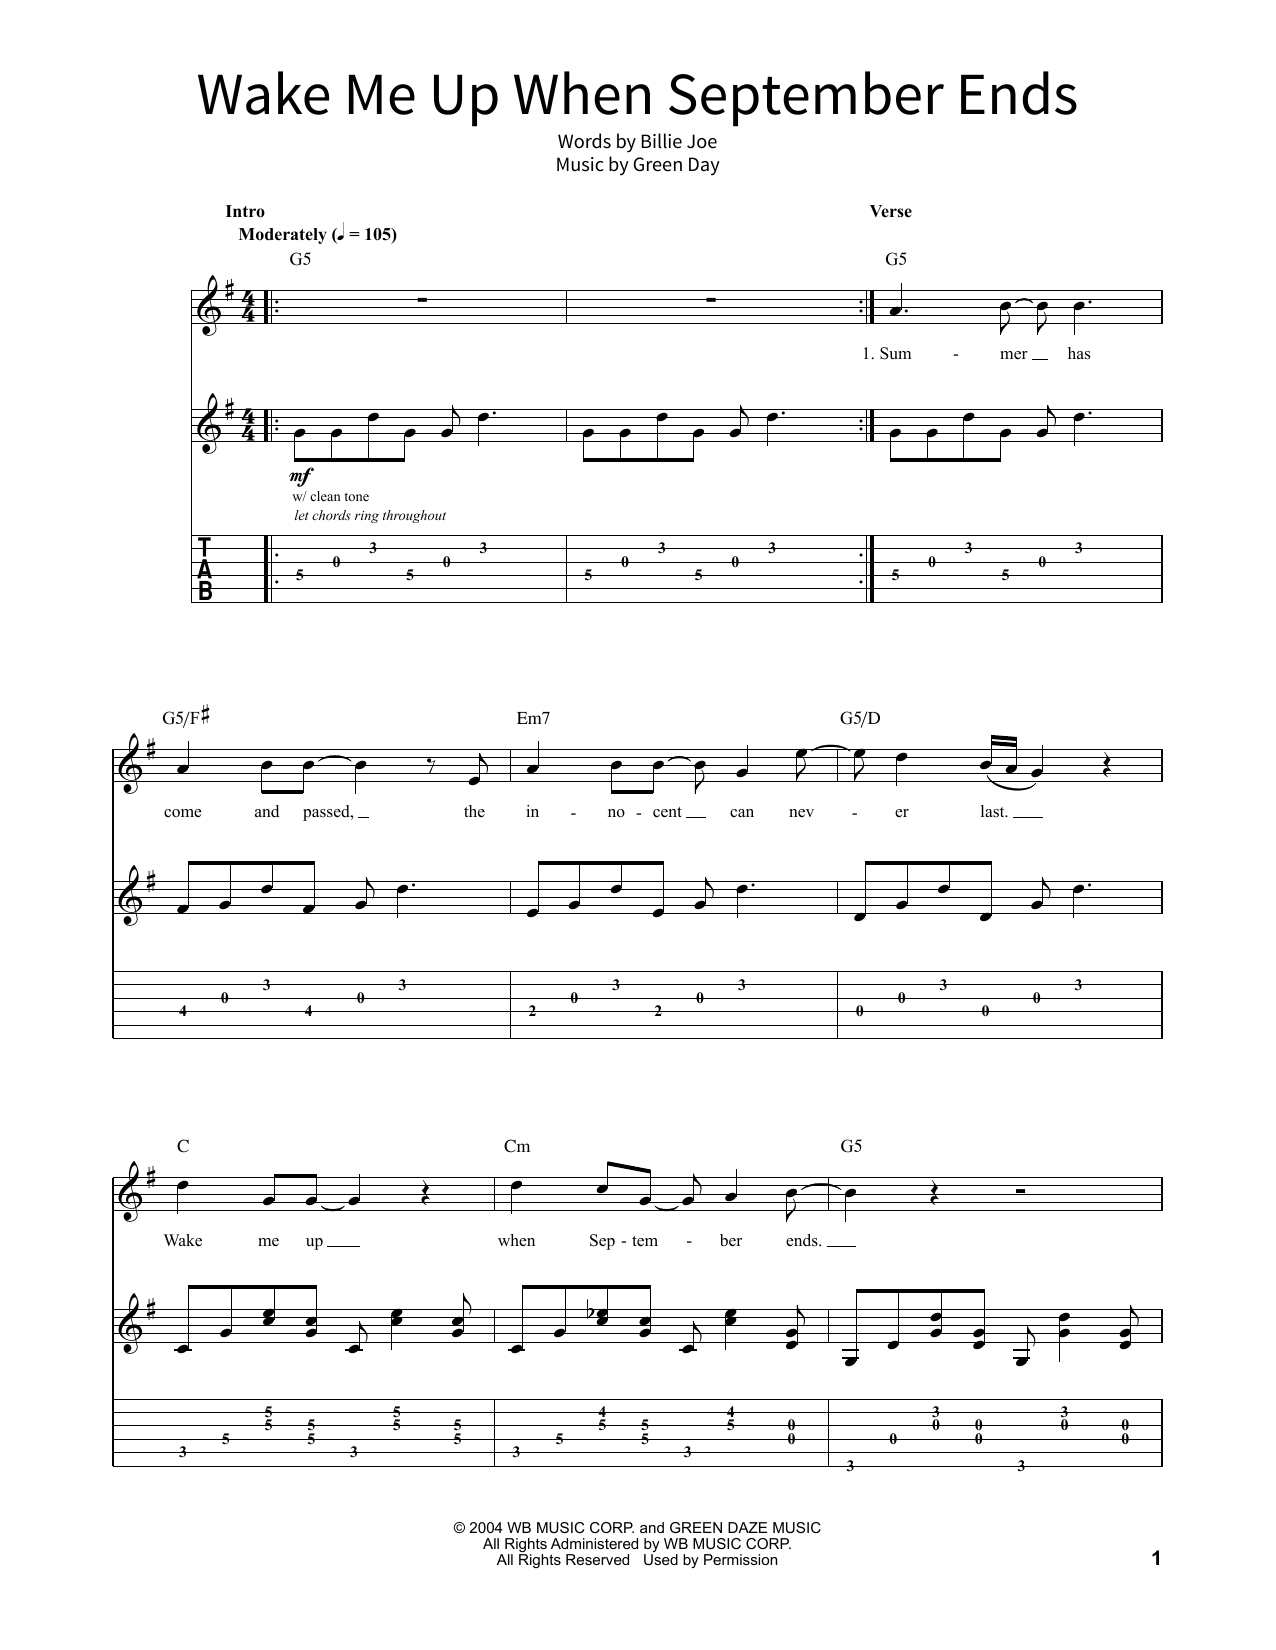 Wake Me Up When September Ends Chords Green Day Wake Me Up When September Ends Sheet Music Notes Chords Download Printable School Of Rock Guitar Tab Sku 379384